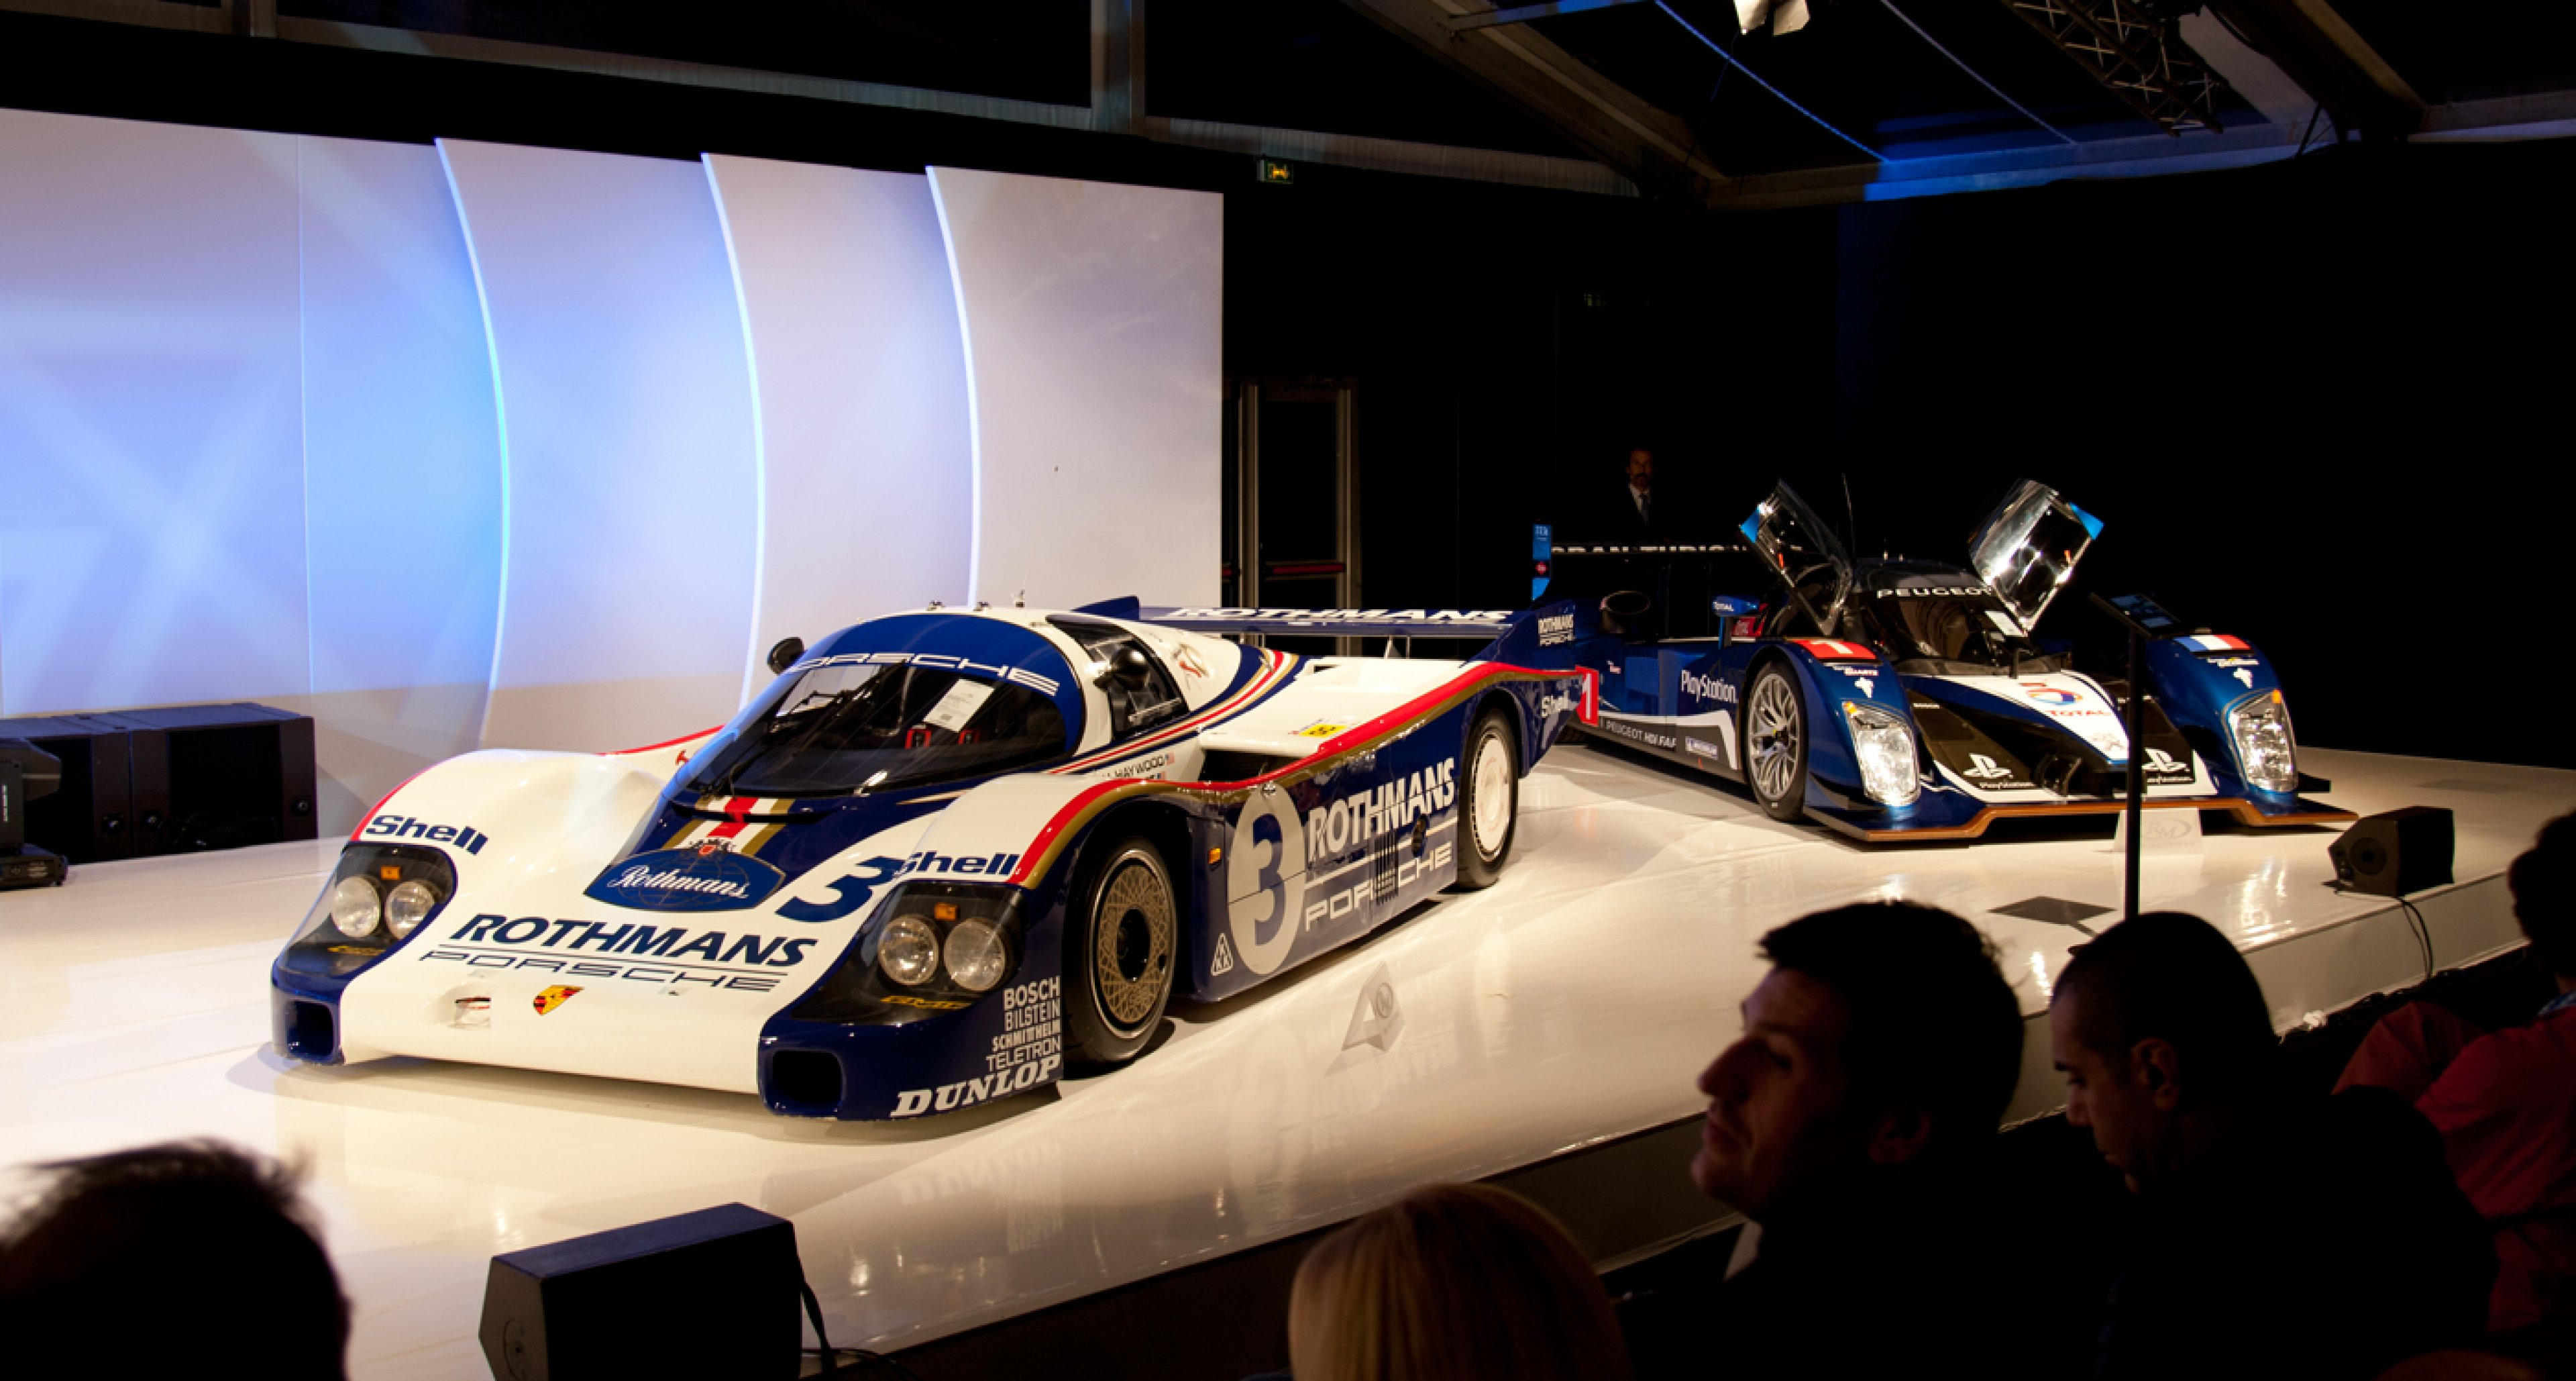 1982 Porsche 956 Group C and 2008 Peugeot 908 HDI Le Mans Prototype